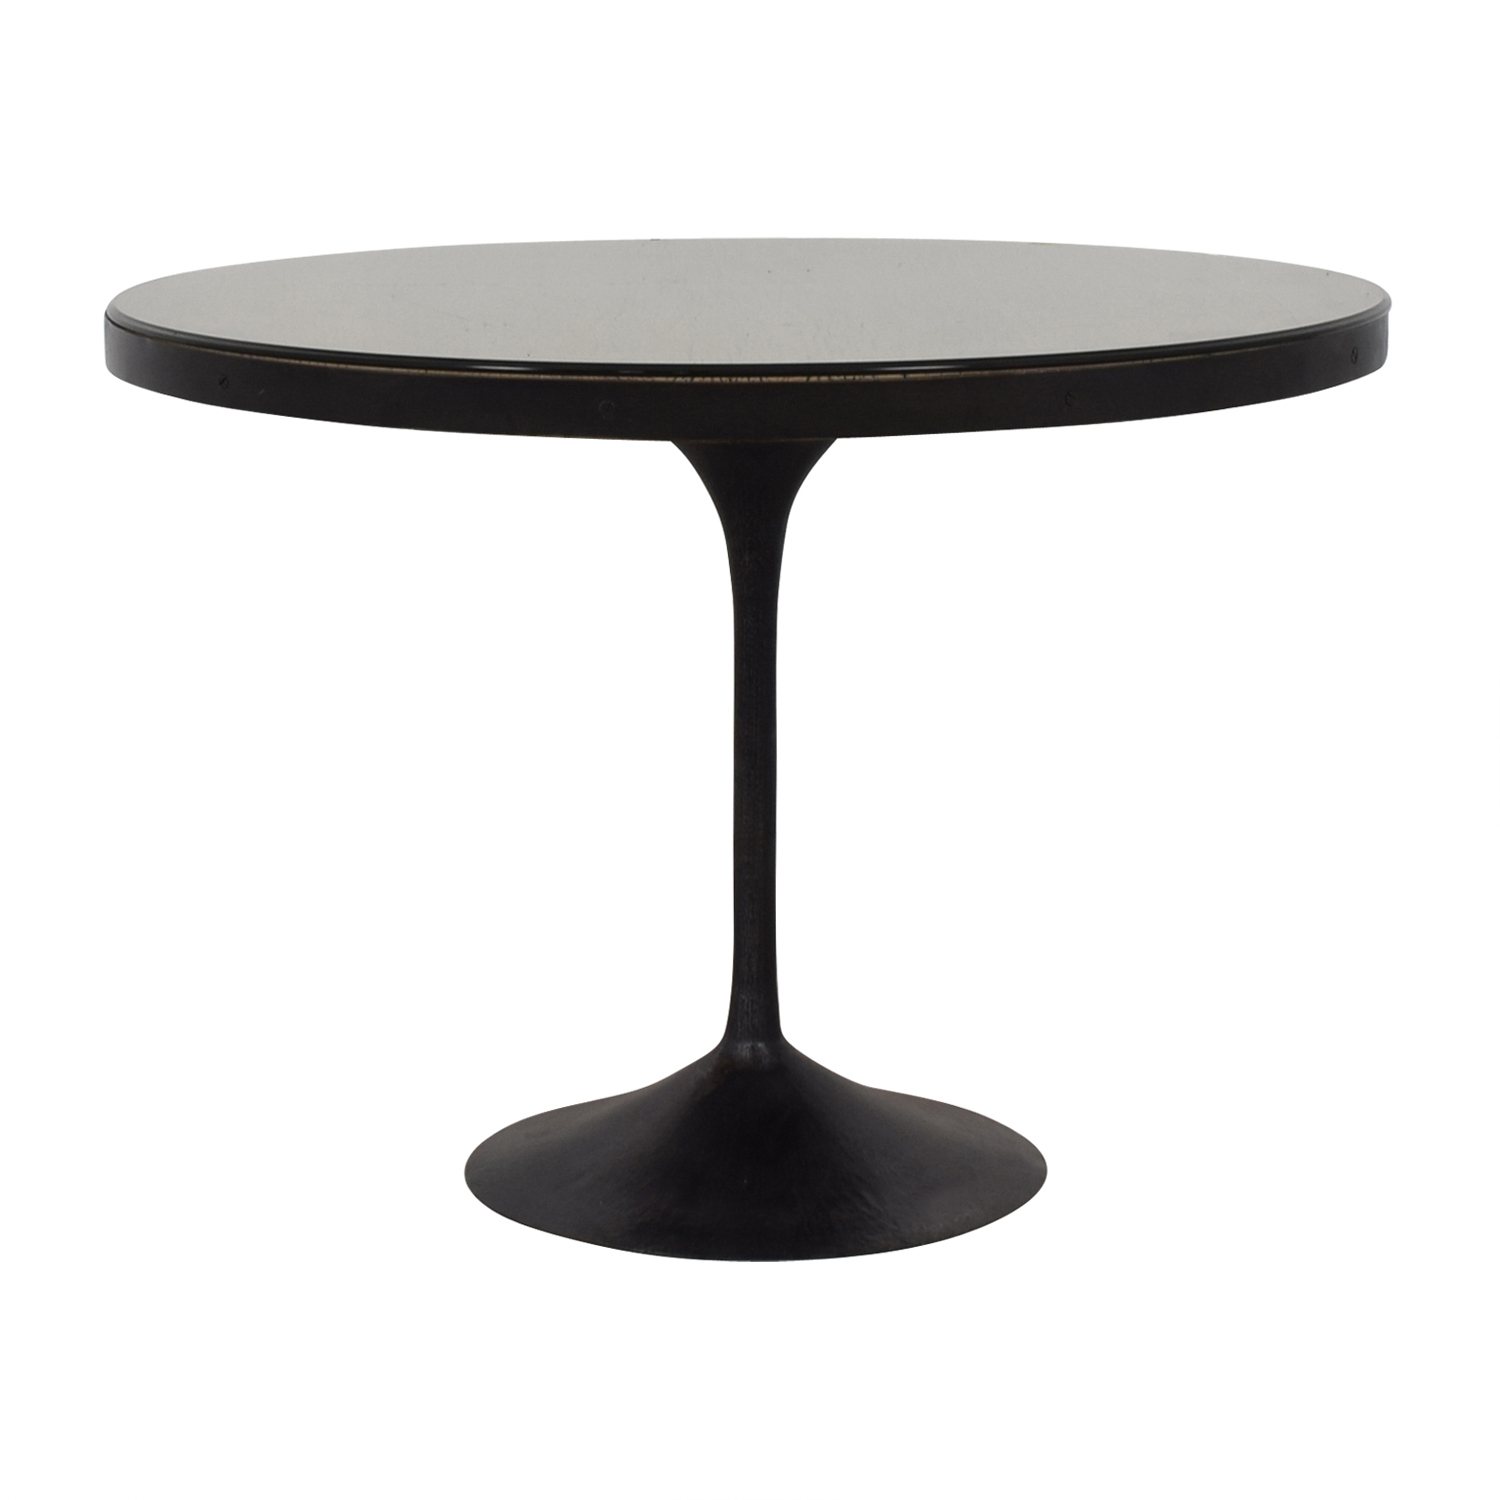 Restoration Hardware Restoration Hardware Aero Round Dining Table price